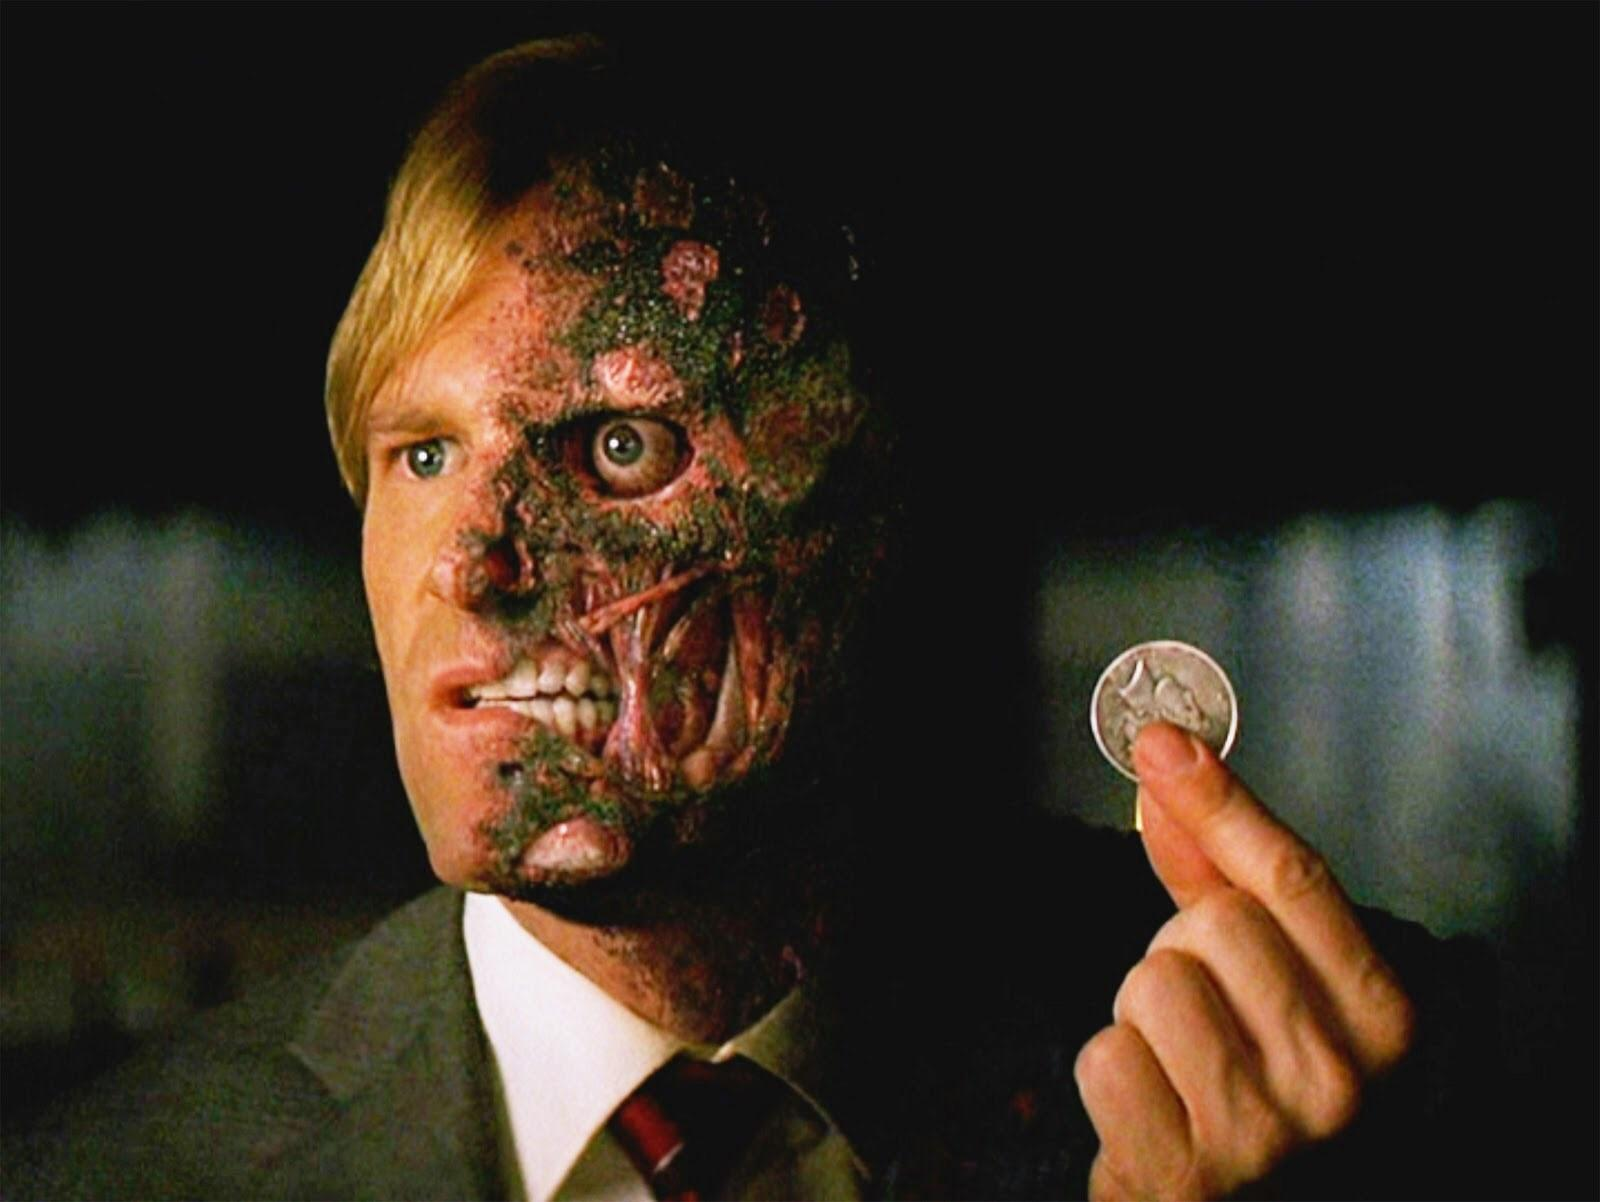 Harvey Dent/Two-Face (Aaron Eckhart) in The Dark Knight (2008)